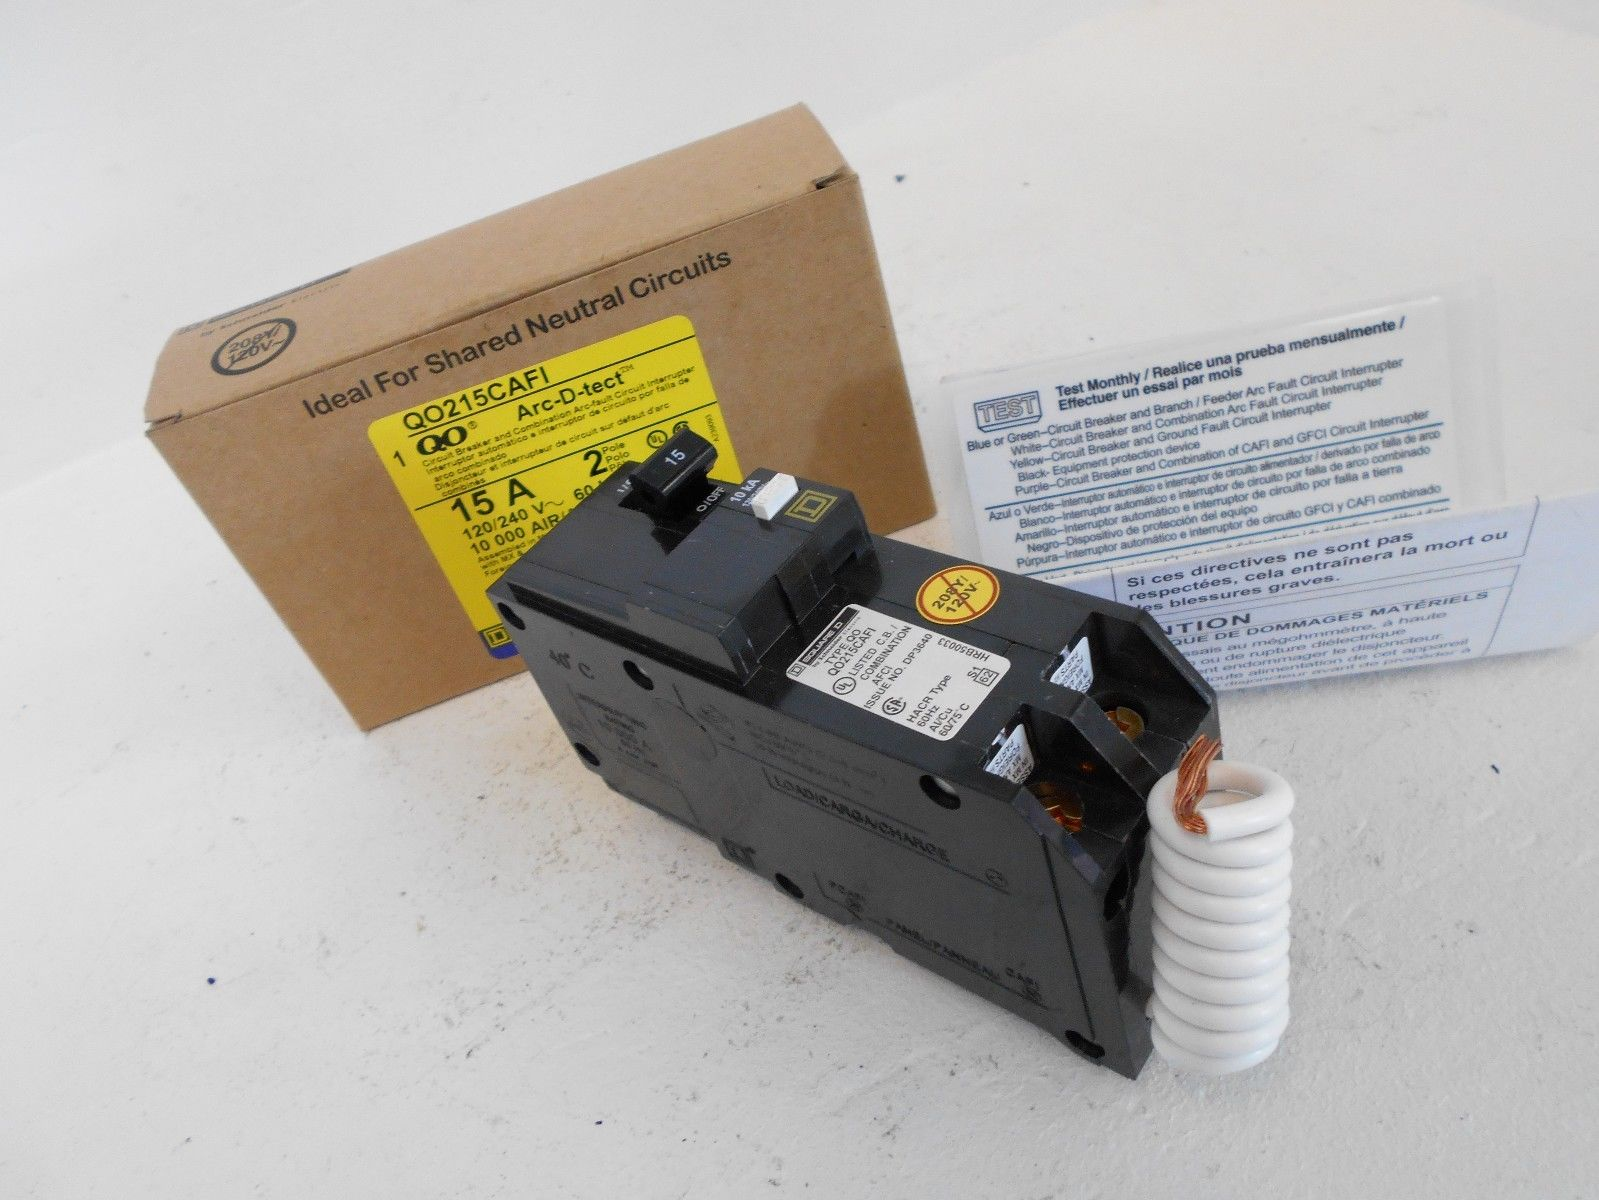 New Square D Qo215cafi 2 Pole 15 Amp 120 240v Combination Arc Fault Circuit Breaker In Addition Interrupter 15a